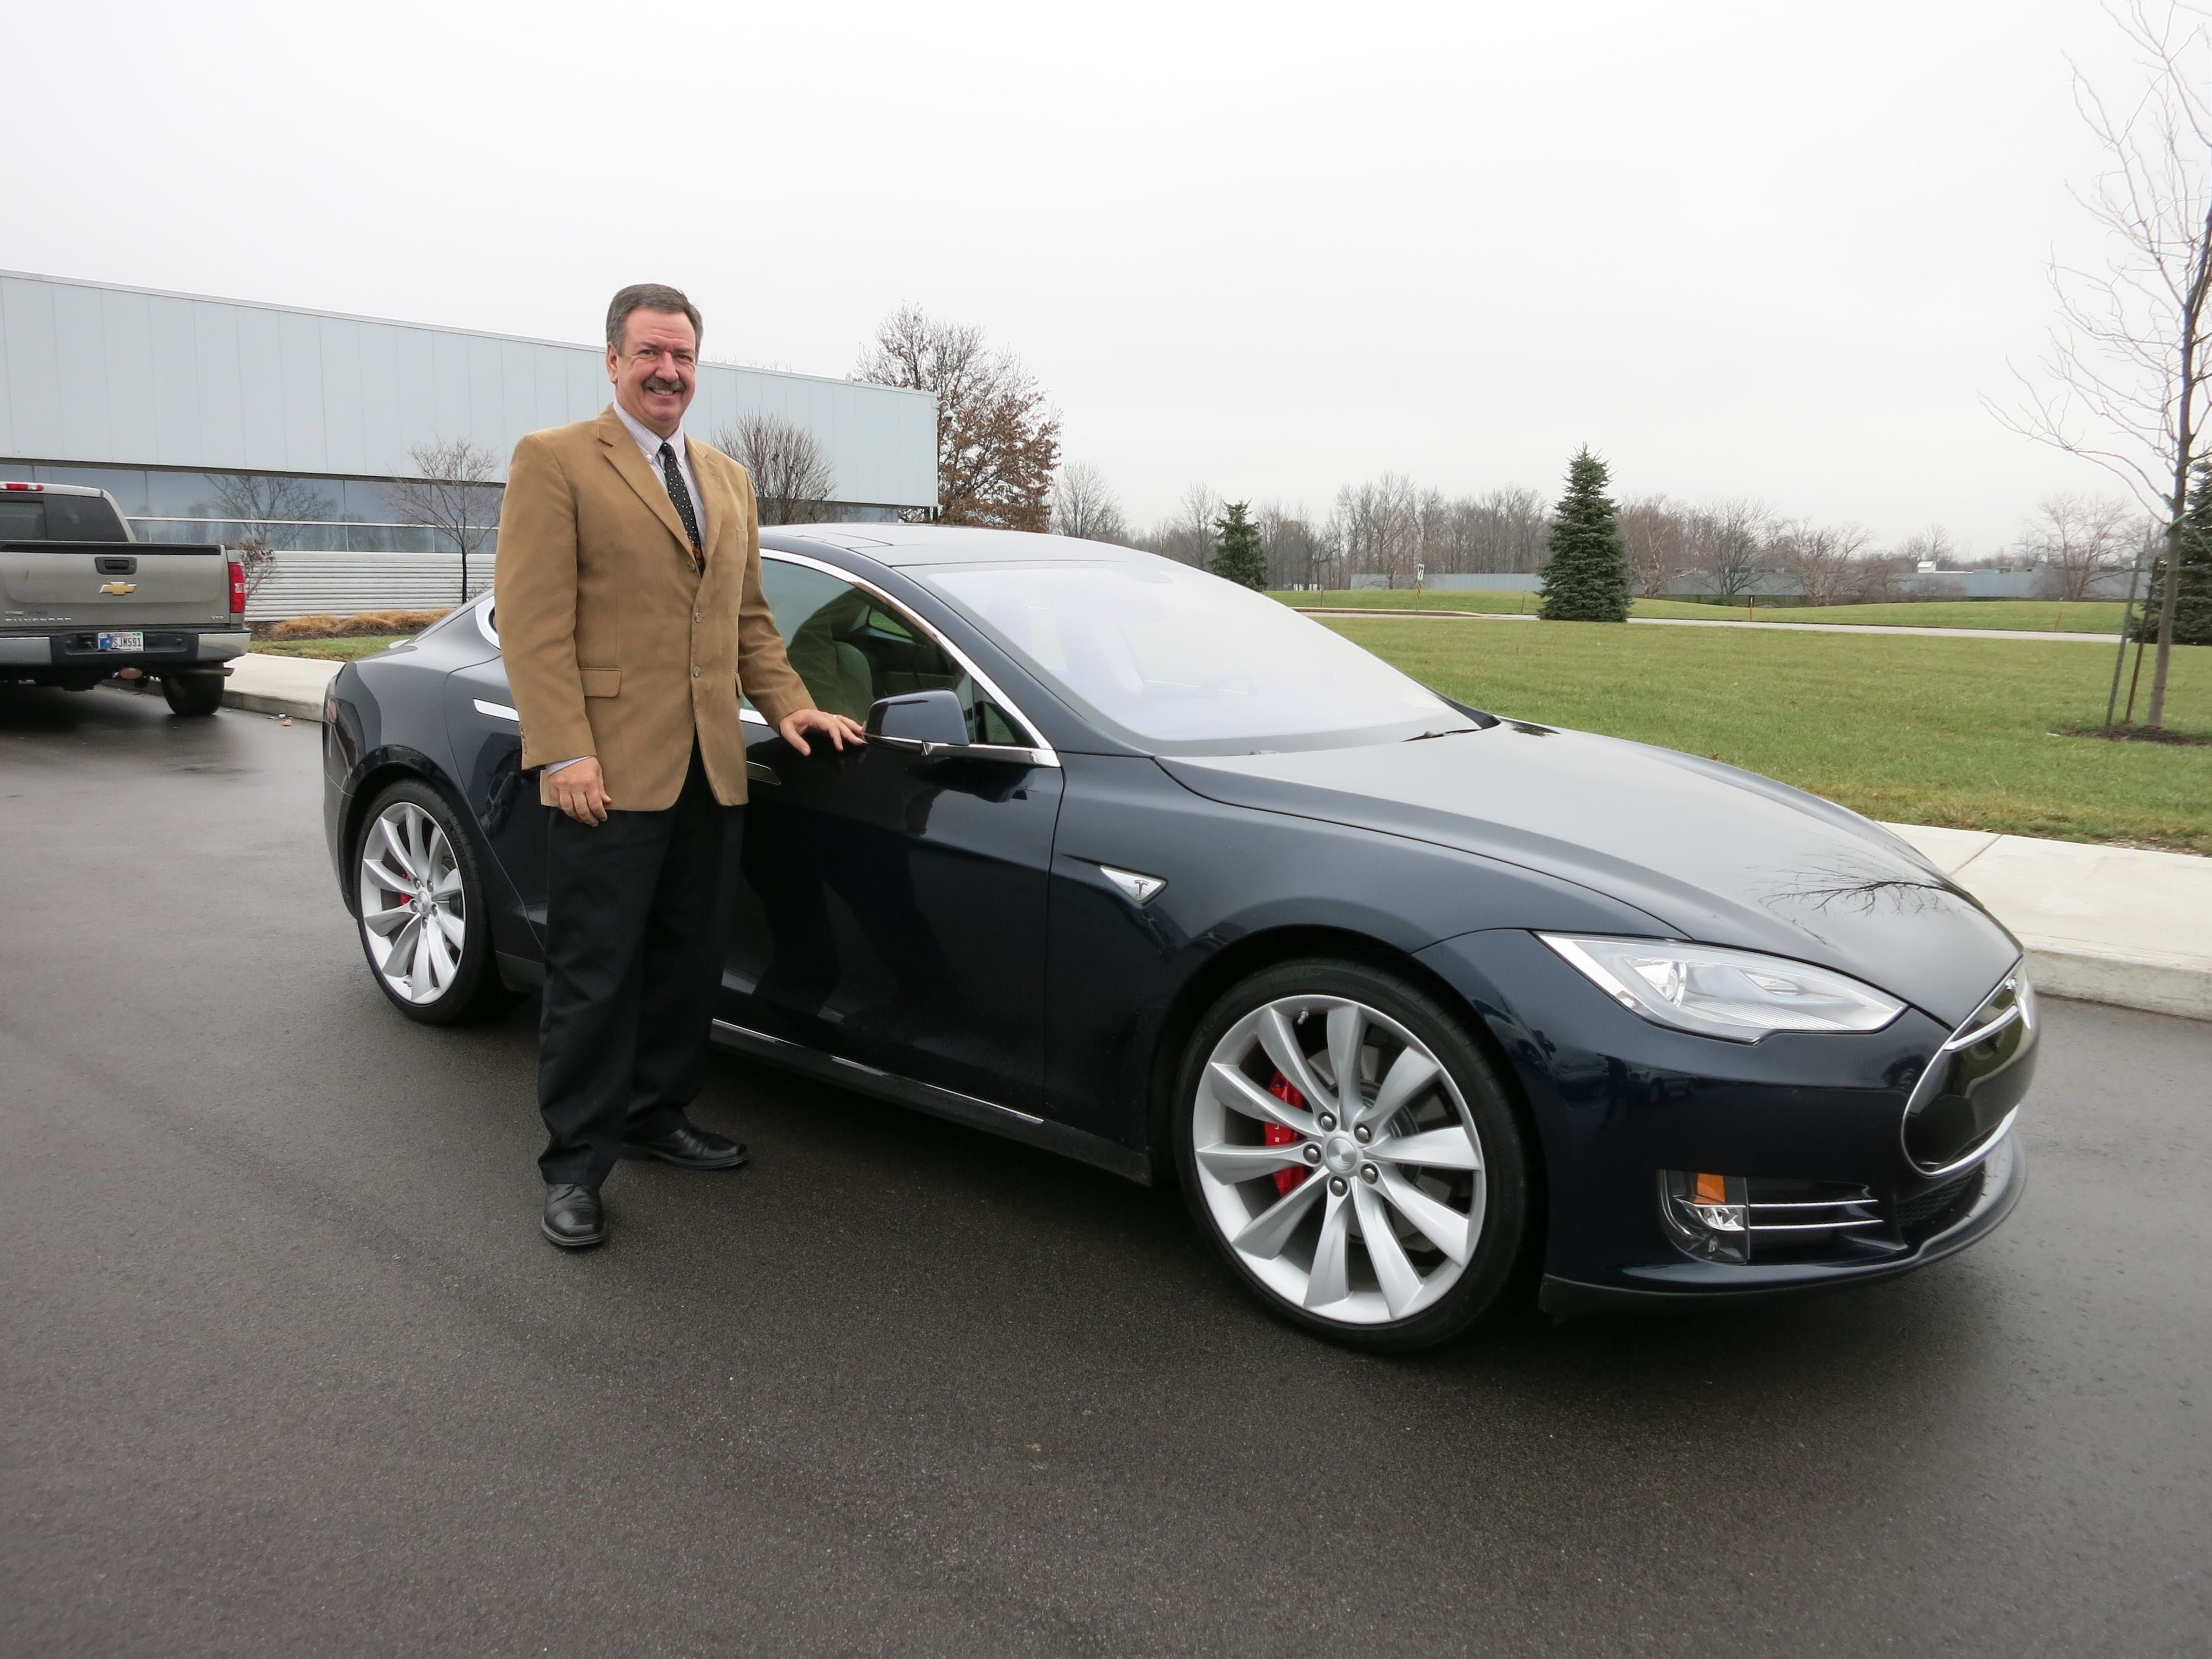 tesla electric cars now seen around town beth behrendt freelance writer author nesting mom tesla electric cars now seen around